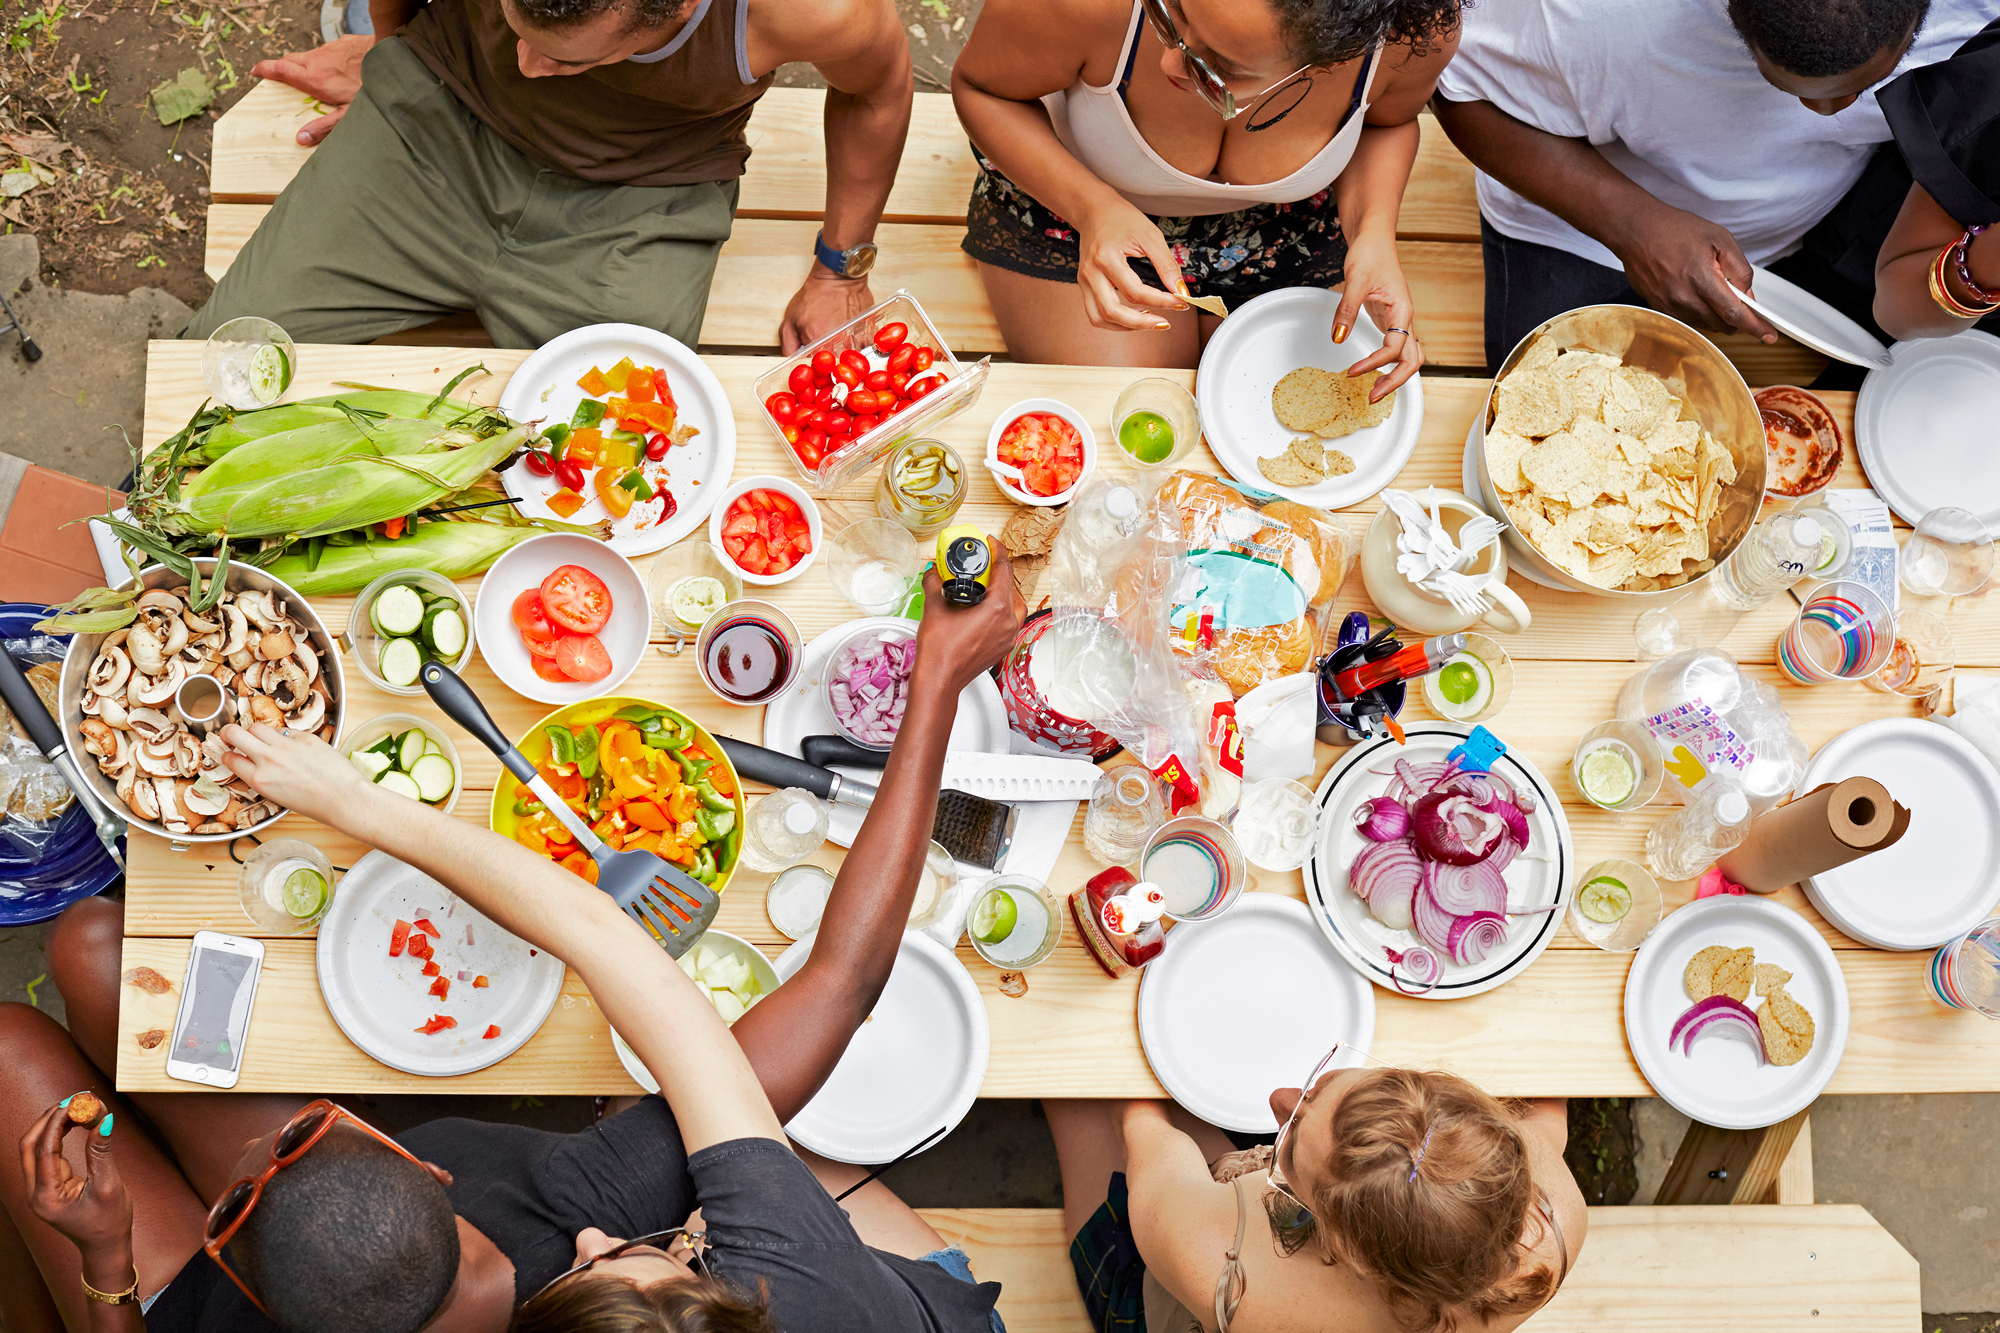 overhead shot of people eating at a picnic table